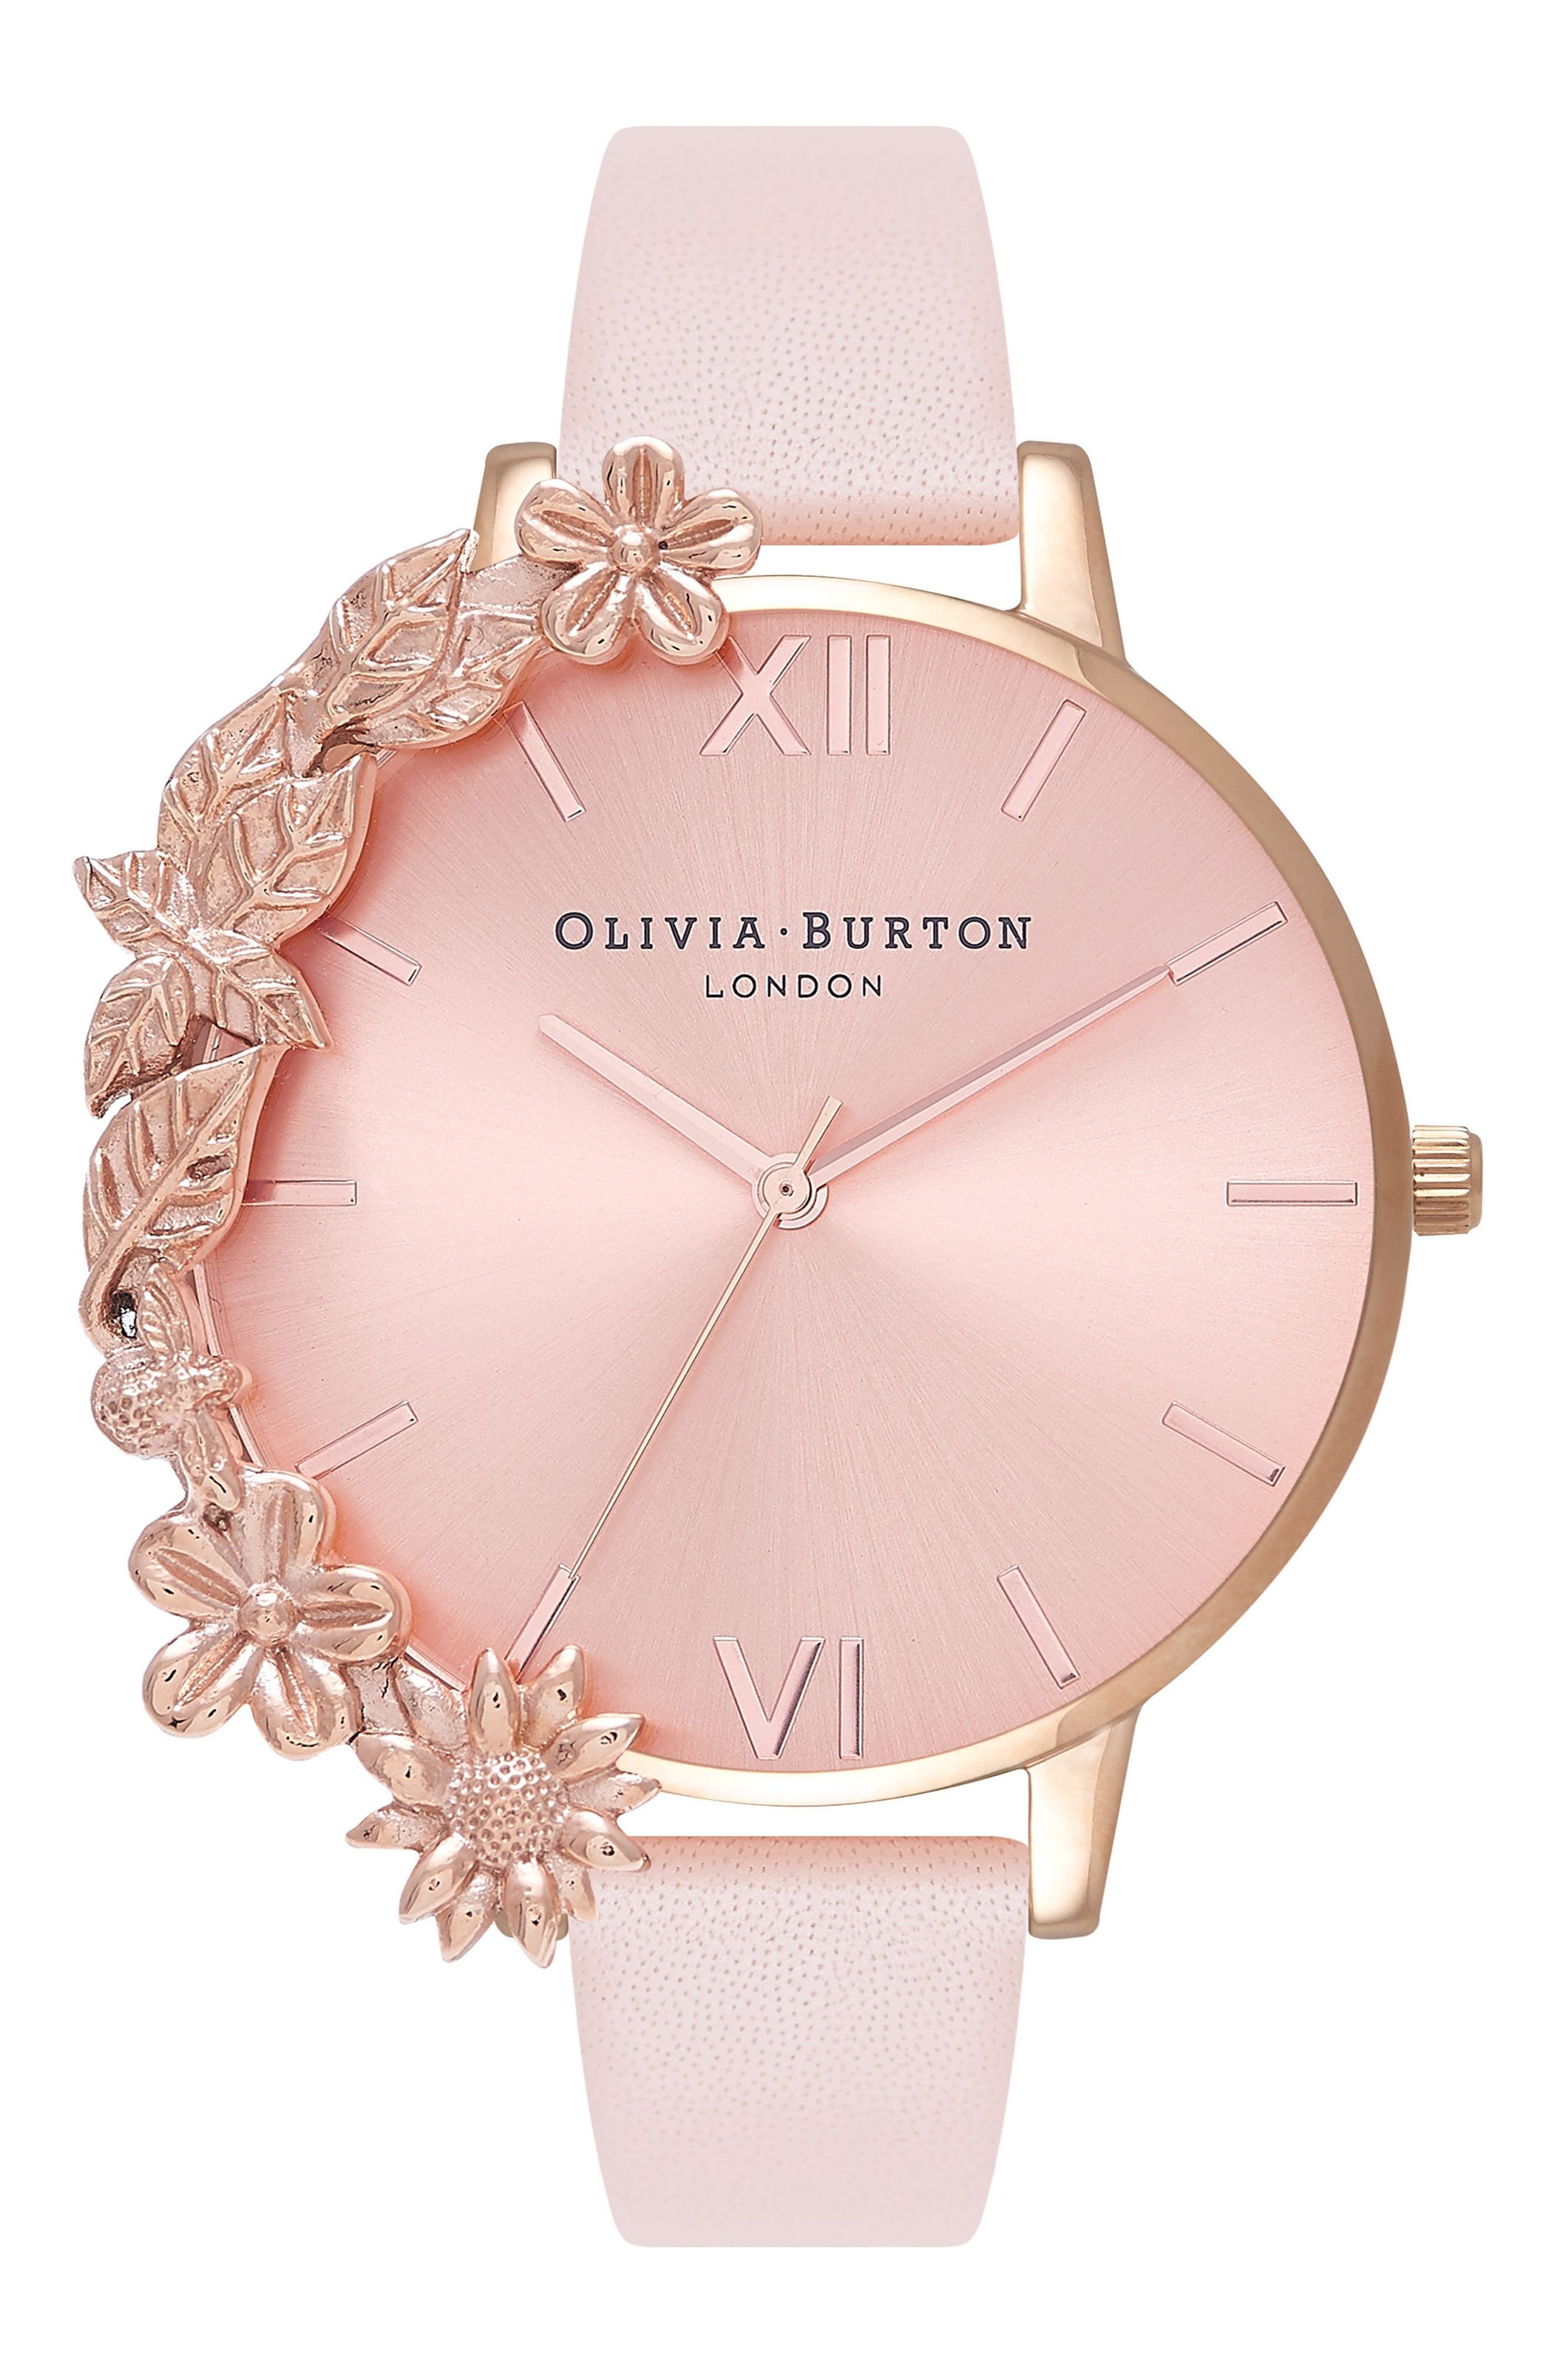 OLIVIA BURTON, Case Cuff Leather Strap Watch, 38mm, Main thumbnail 1, color, ROSE GOLD